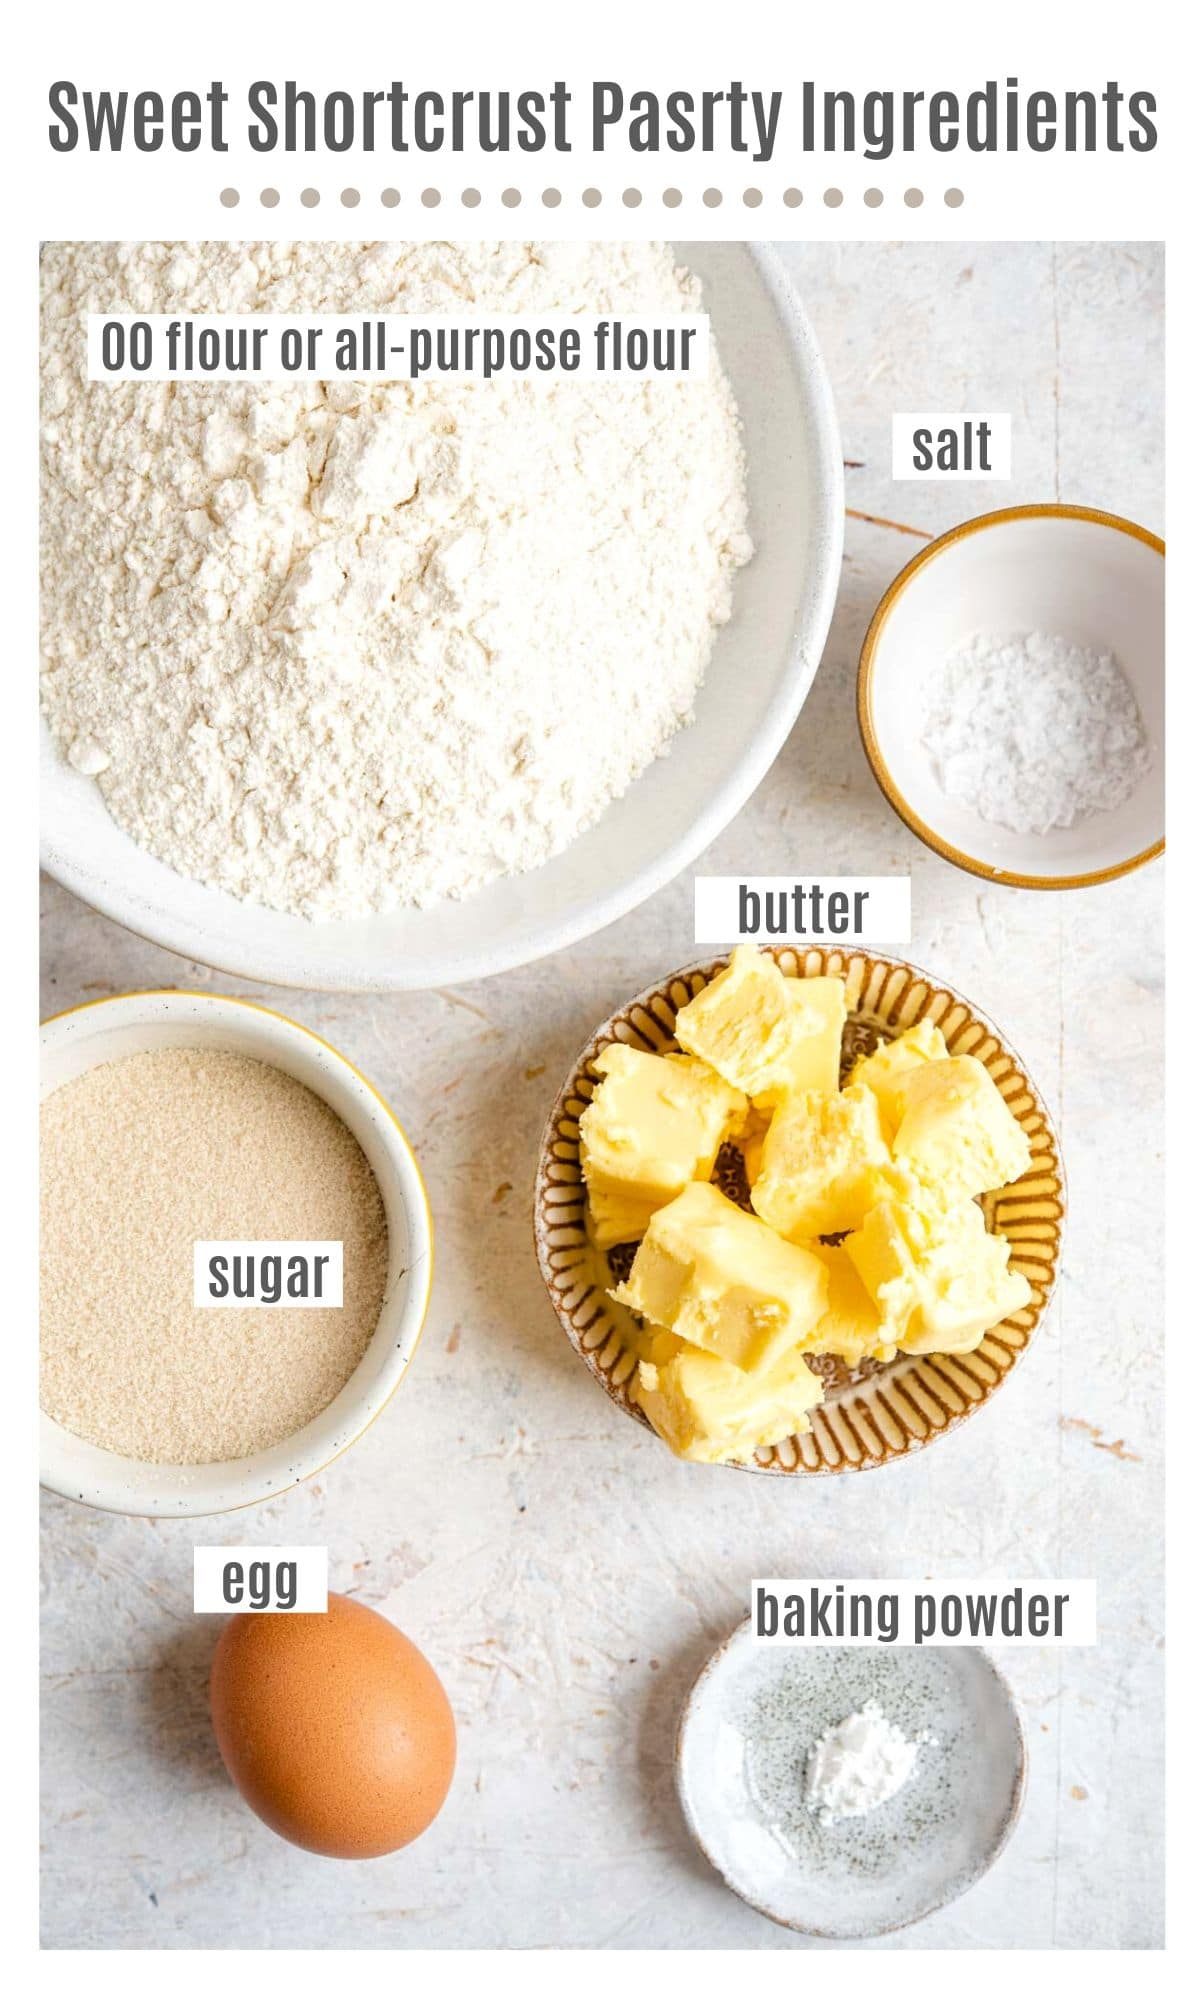 An overhead shot of all the ingredients needed to make sweet shortcrust pastry